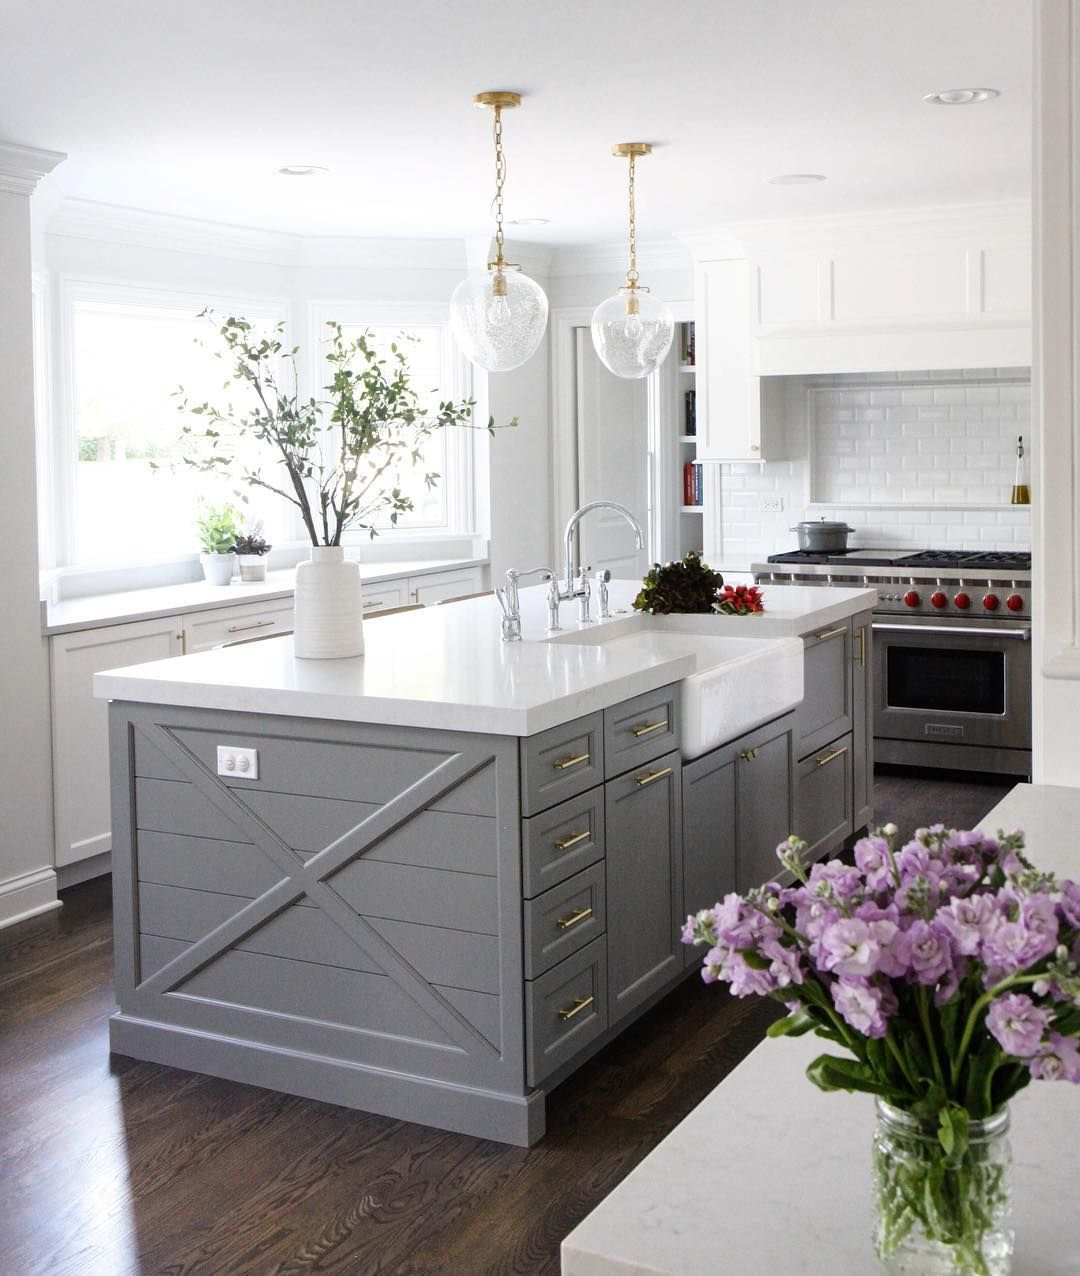 Colored Kitchen Islands Used Chairs Island Paint Color Is Chelsea Gray Benjamin Moore Via Park And Oak Design